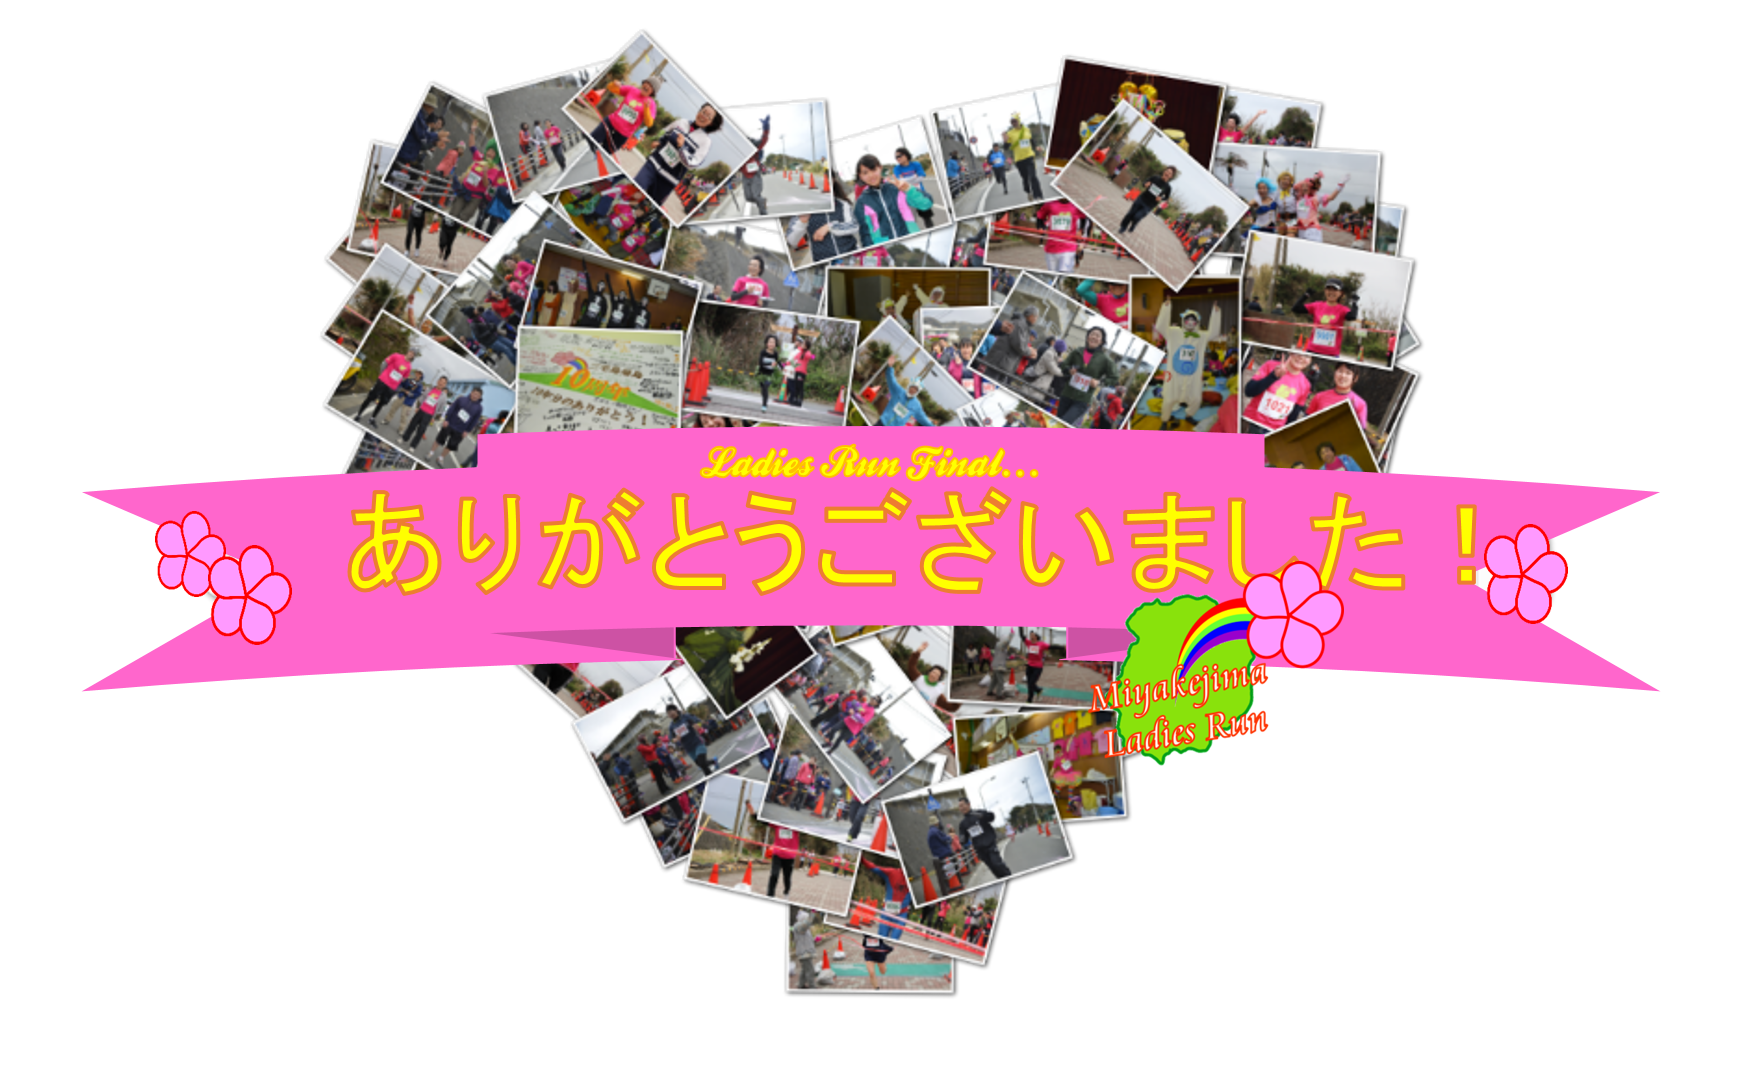 201503121418401a1.png